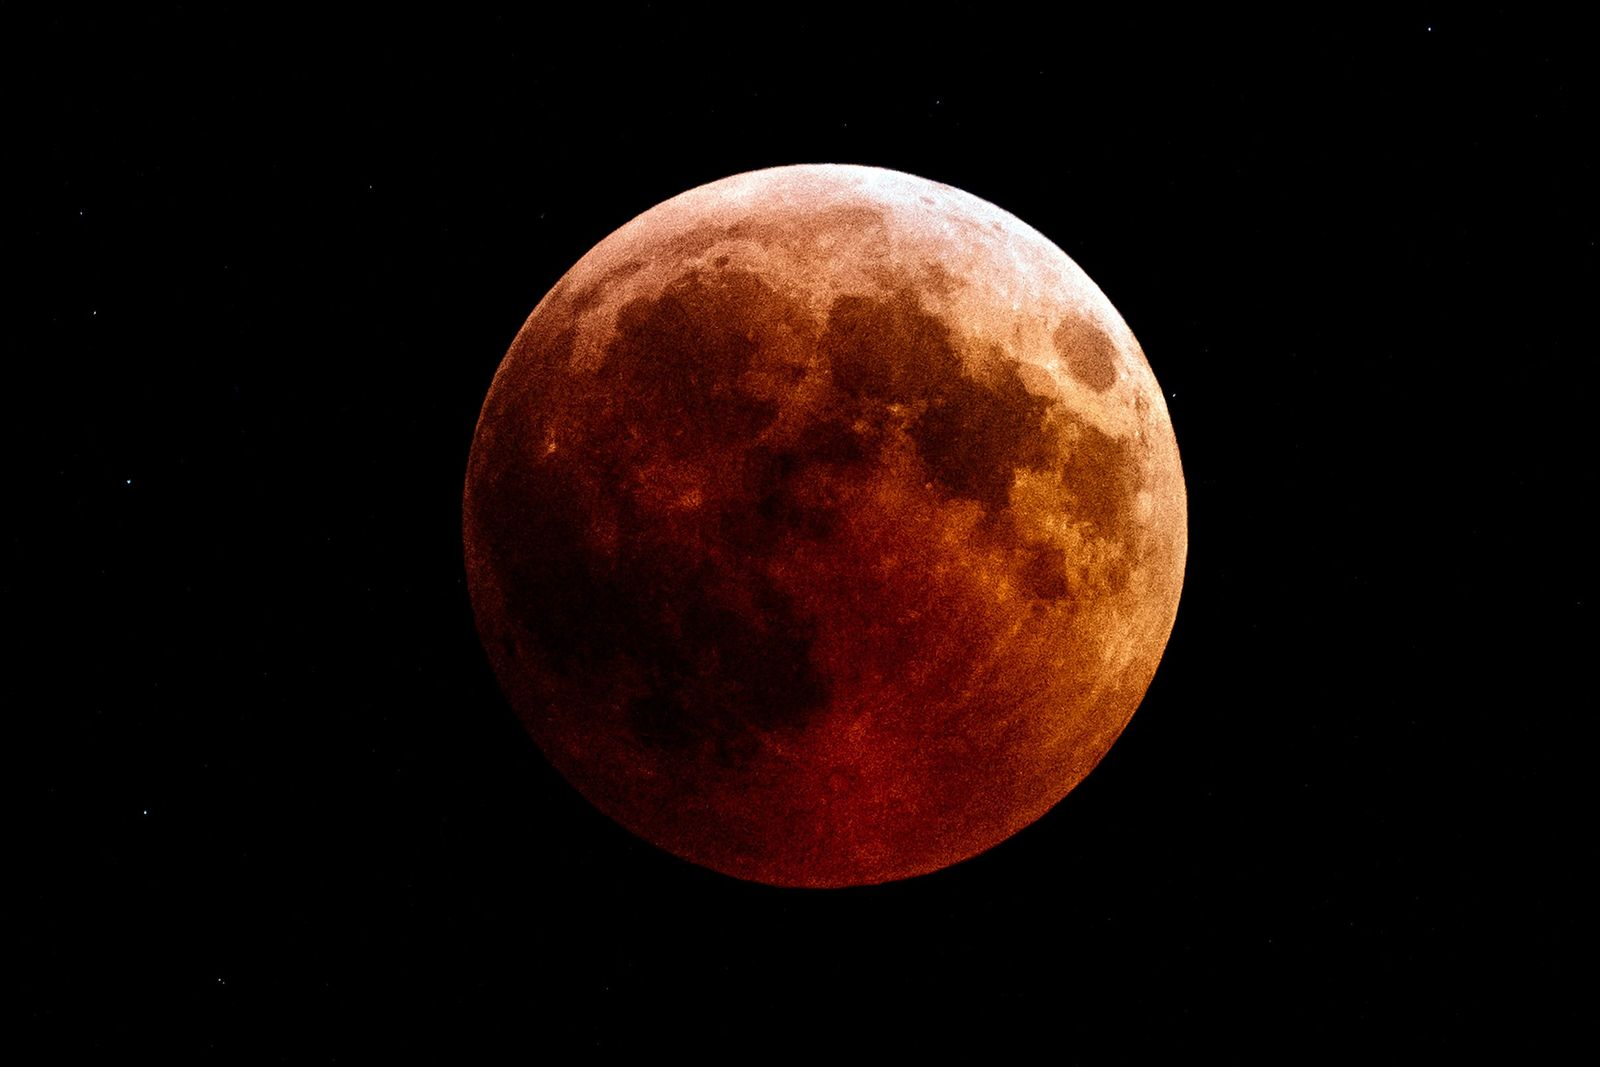 'Super Blood Wolf Moon' will be visible in the early hours of Monday